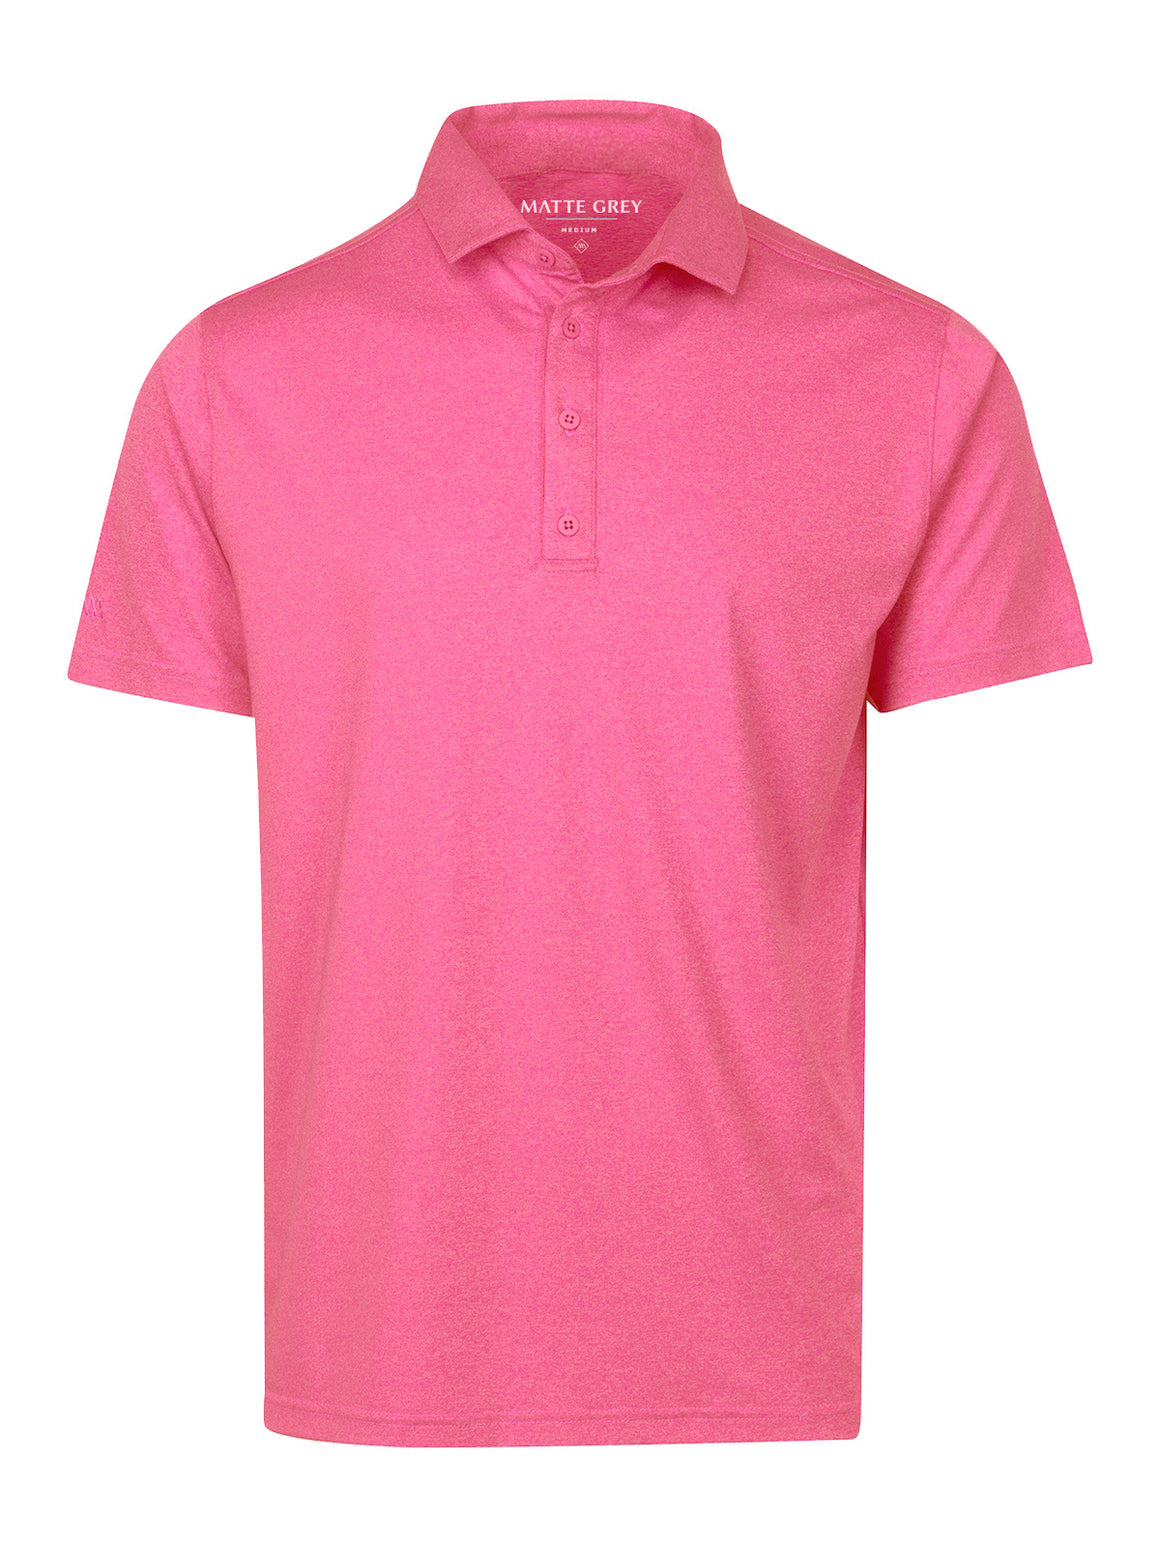 Captain - Maui Pink Heather